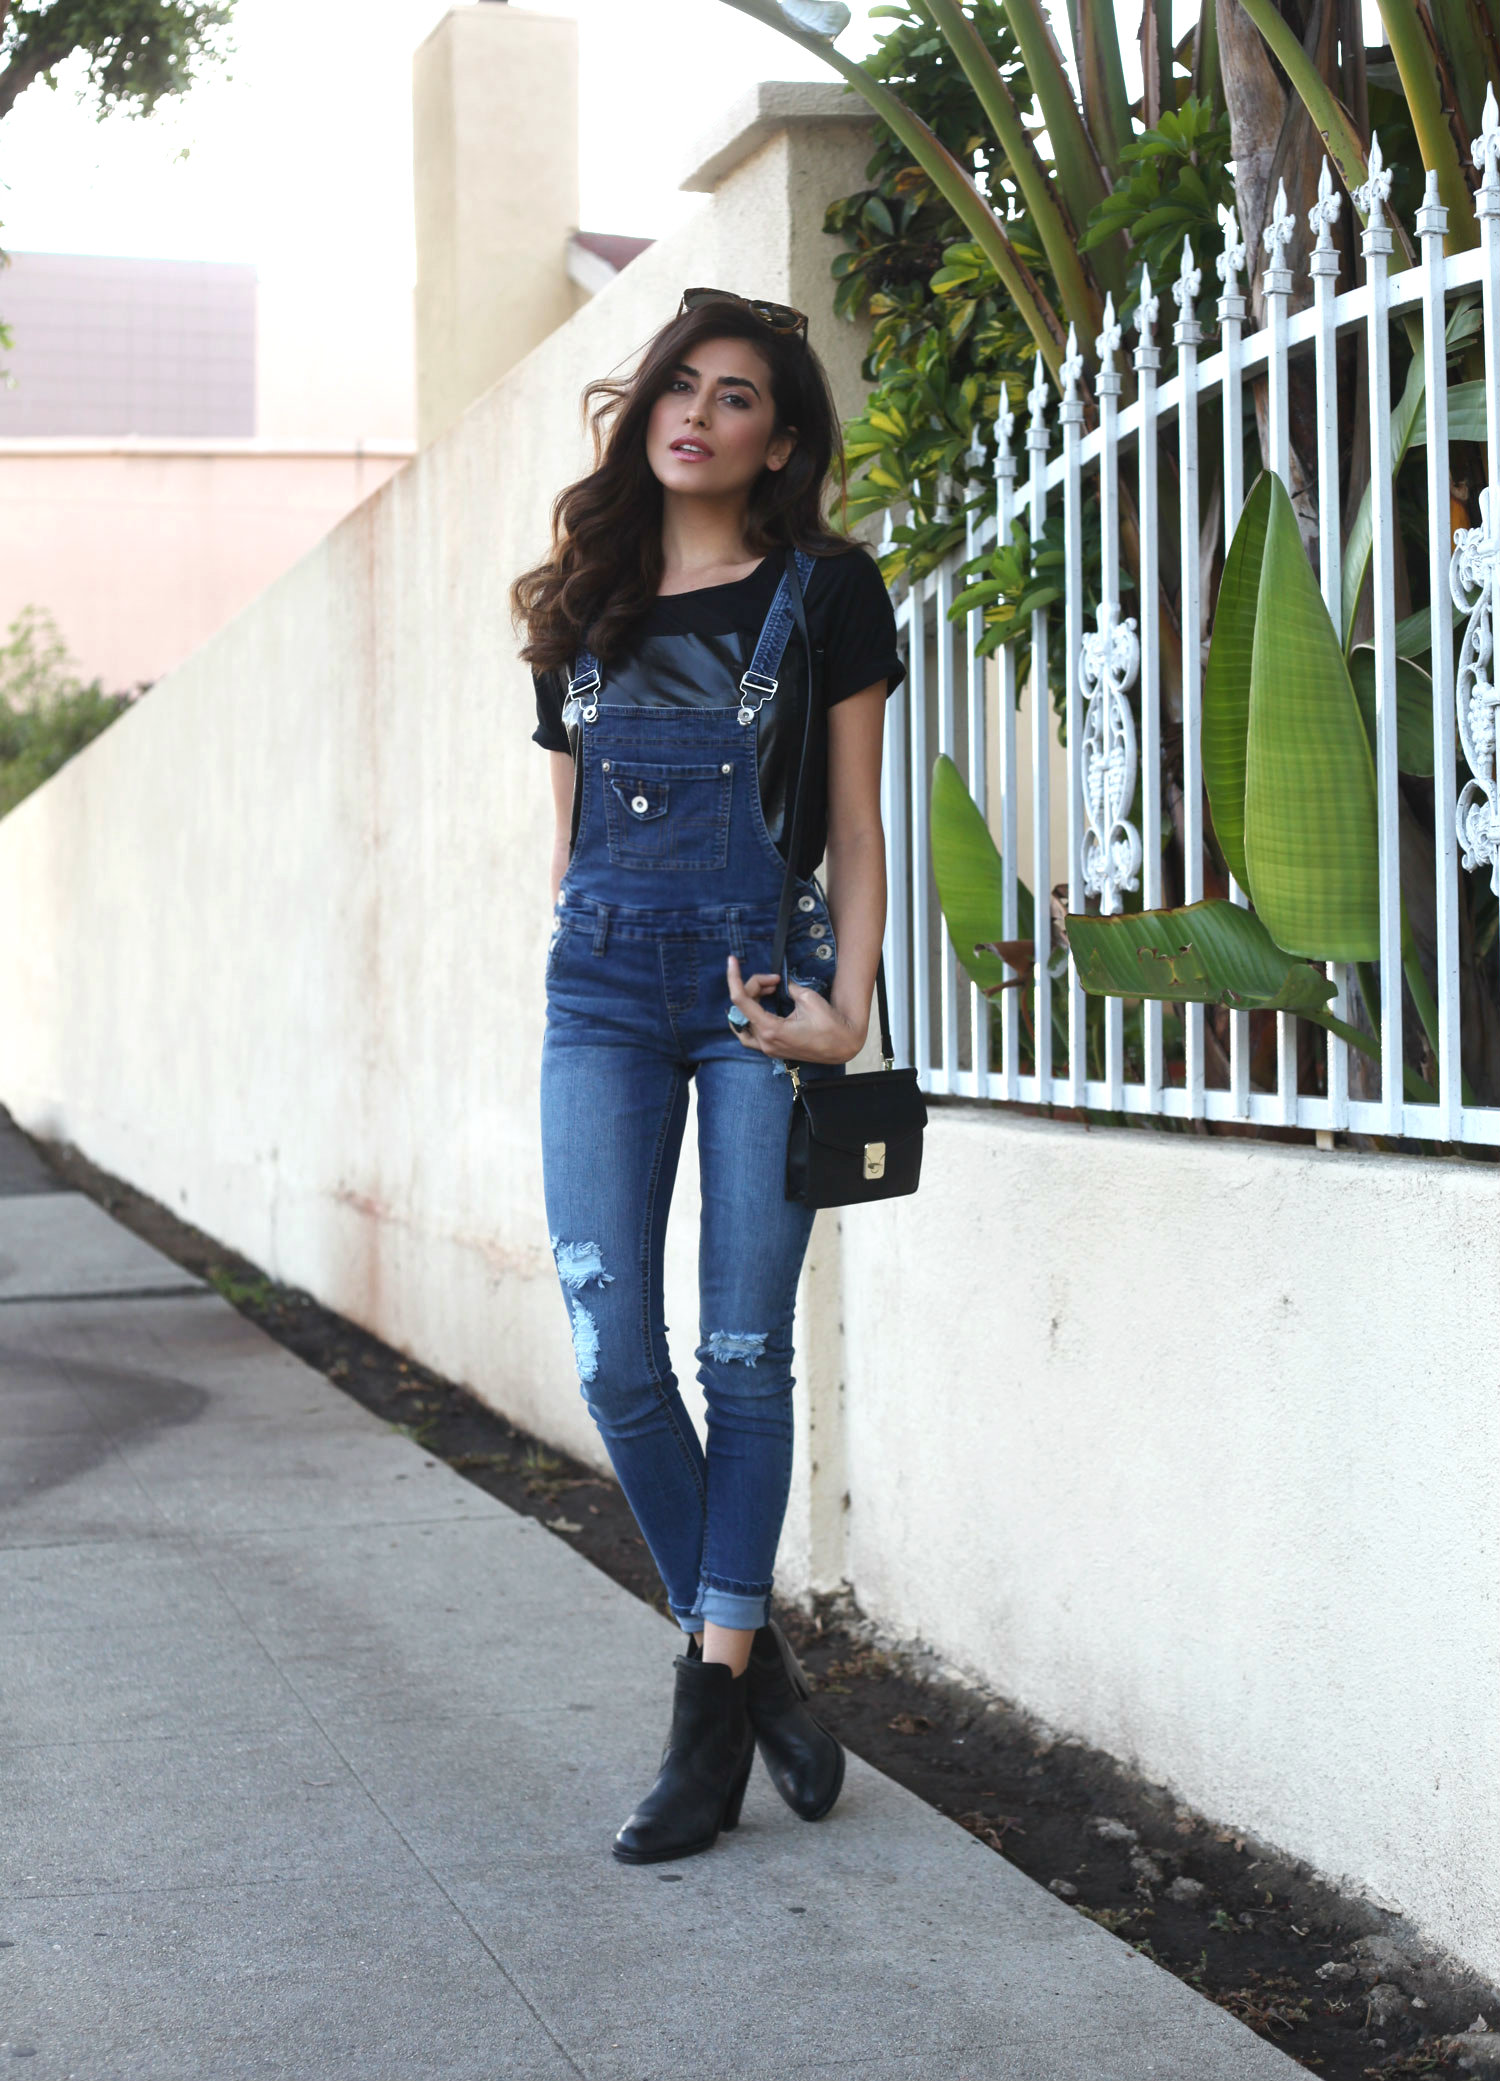 Be stylish - How to wear your overalls this fall